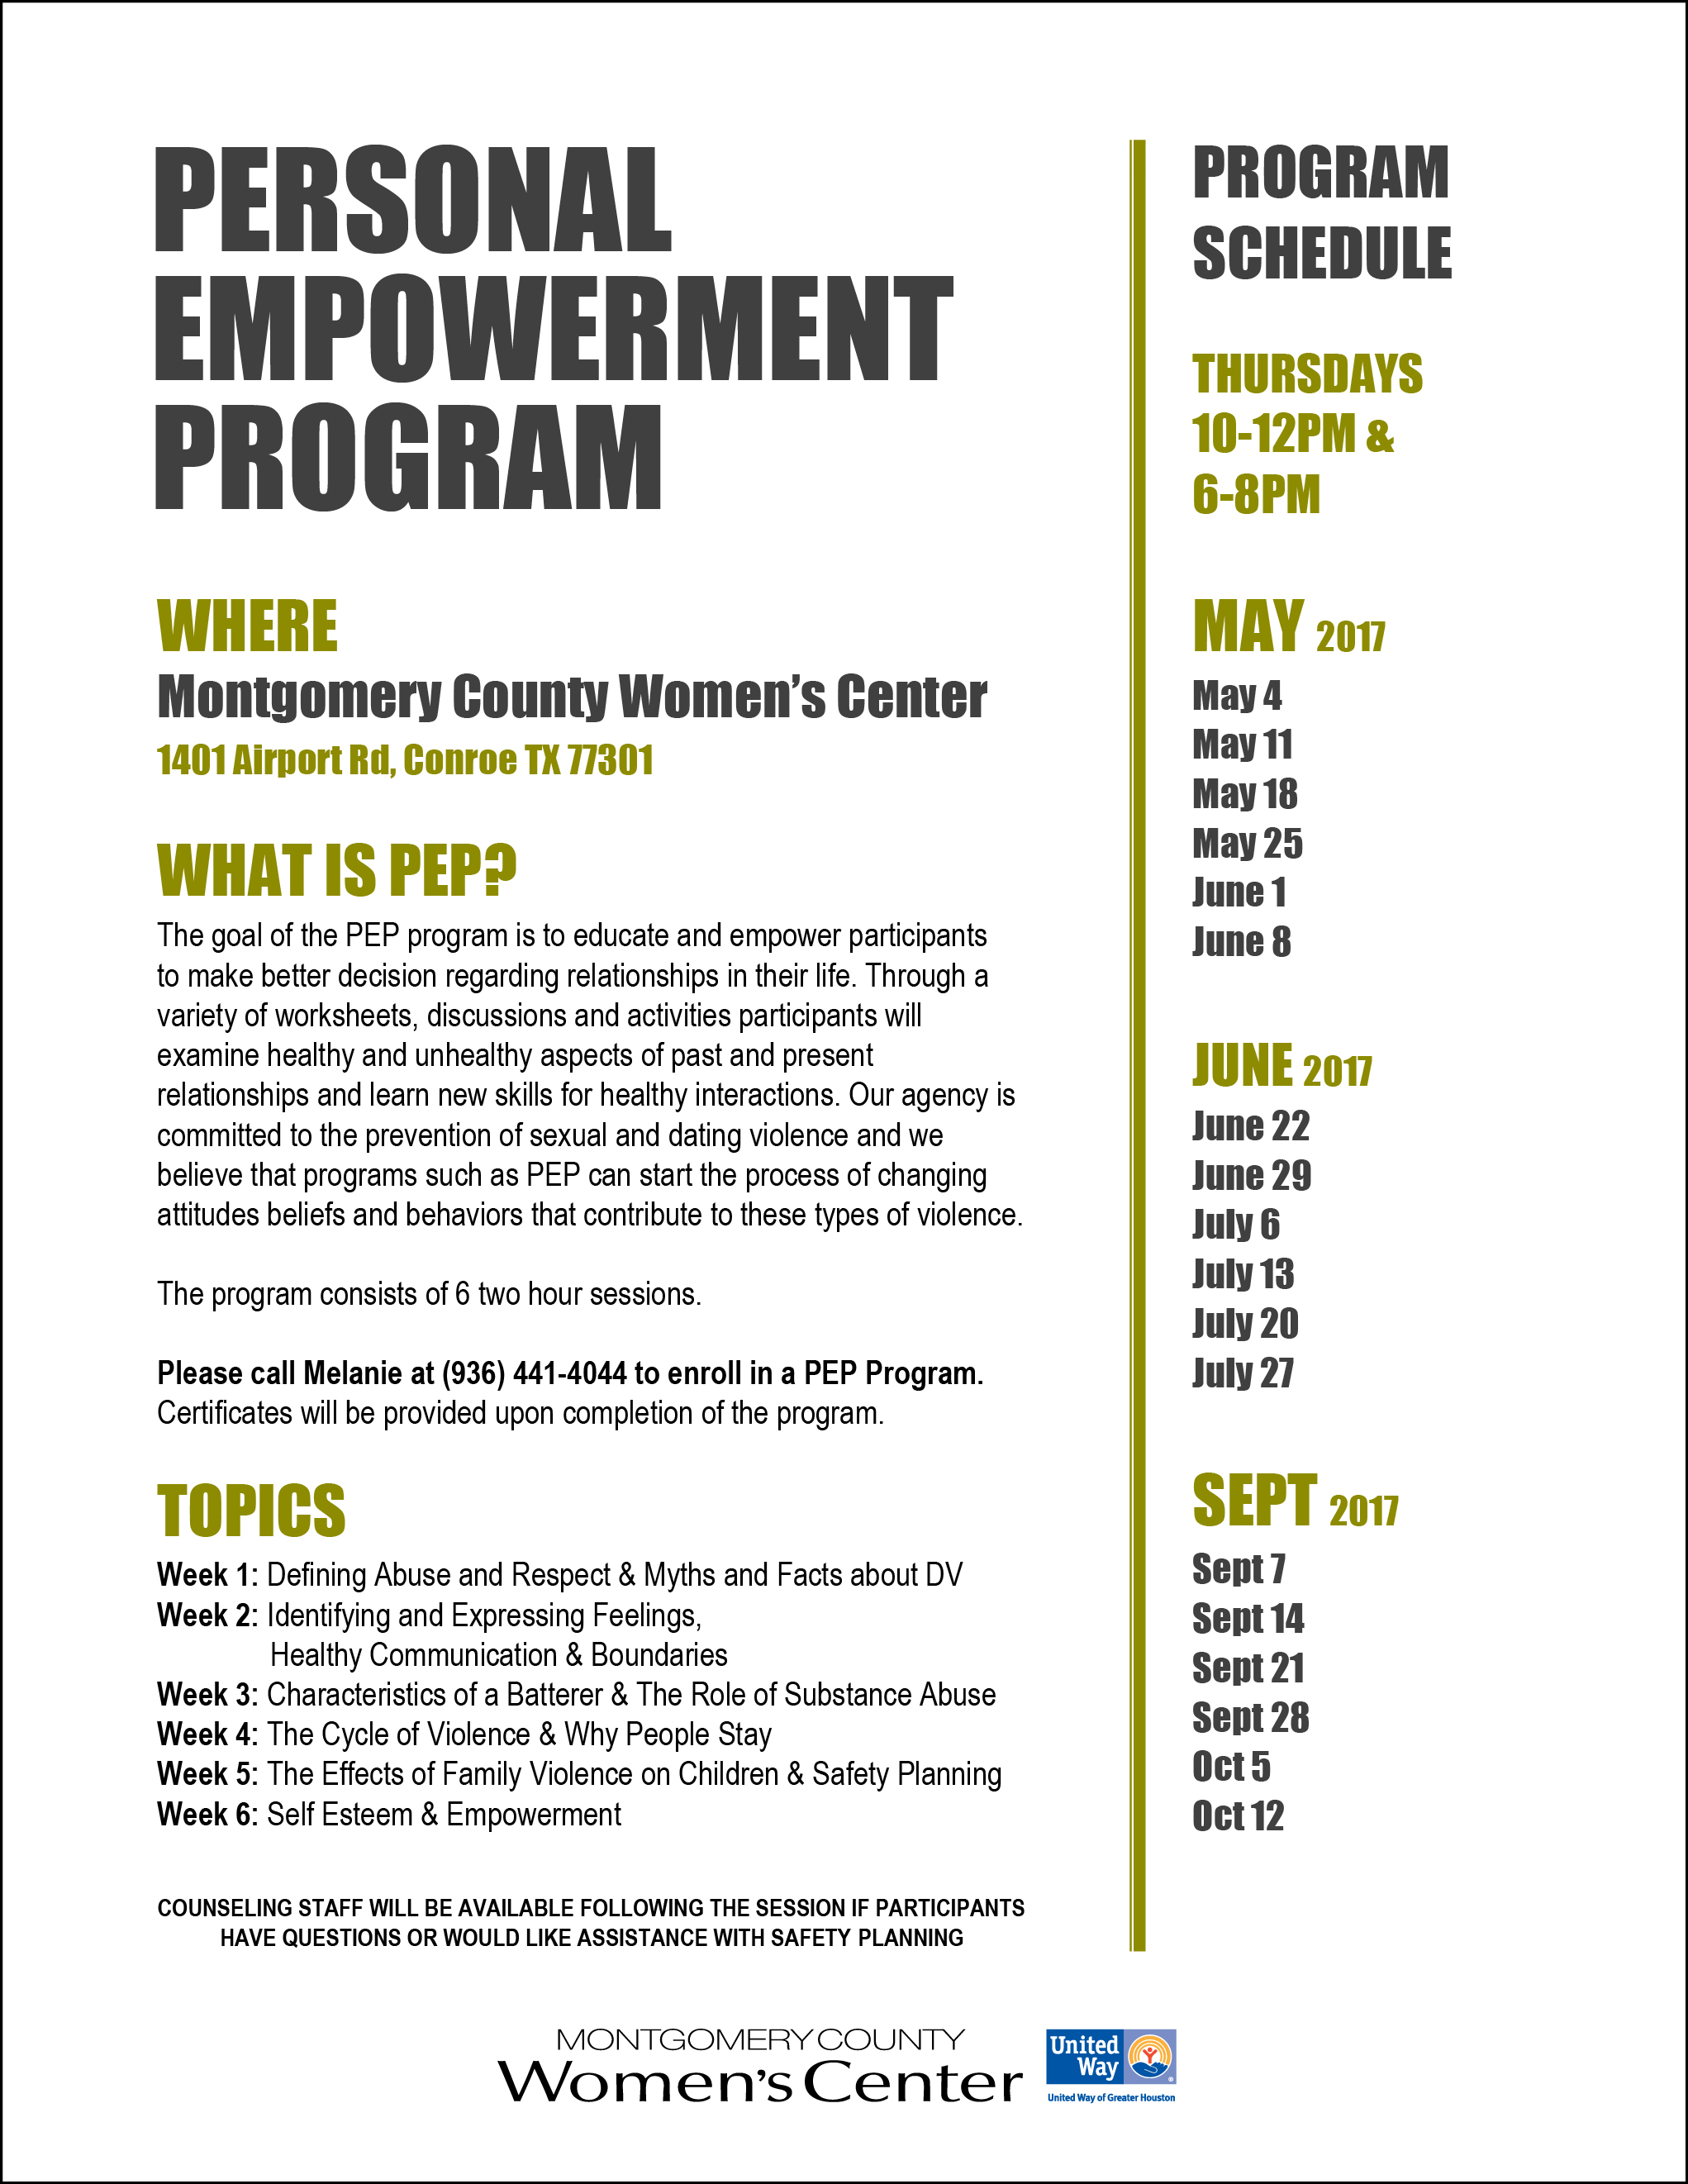 Flyer for personal empowerment programs